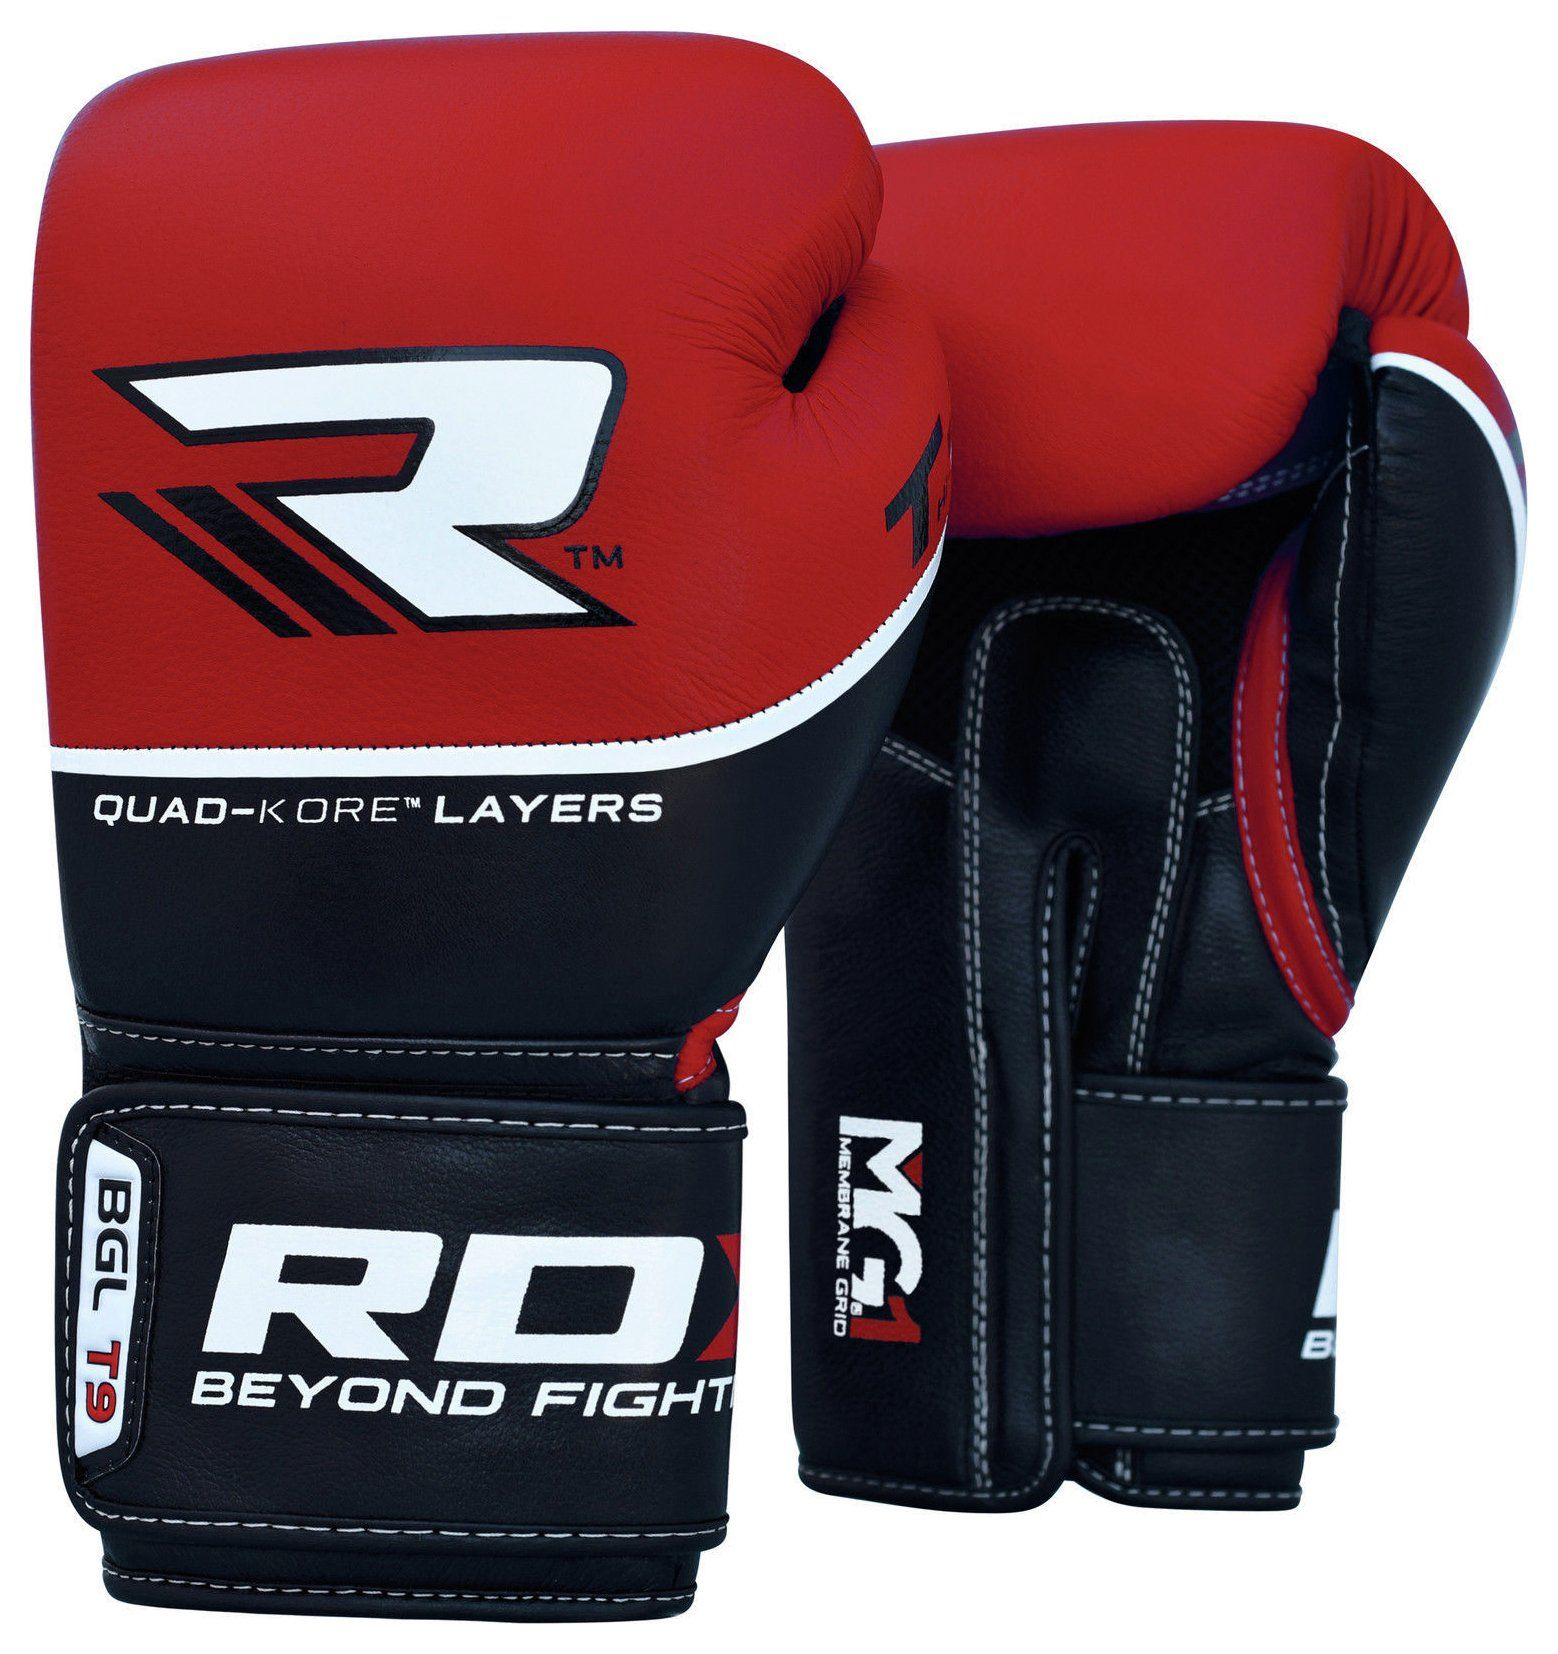 Buy Rdx Quad Kore 12oz Boxing Gloves Red Boxing Gloves In 2020 Heavy Punching Bag Bag Mitts